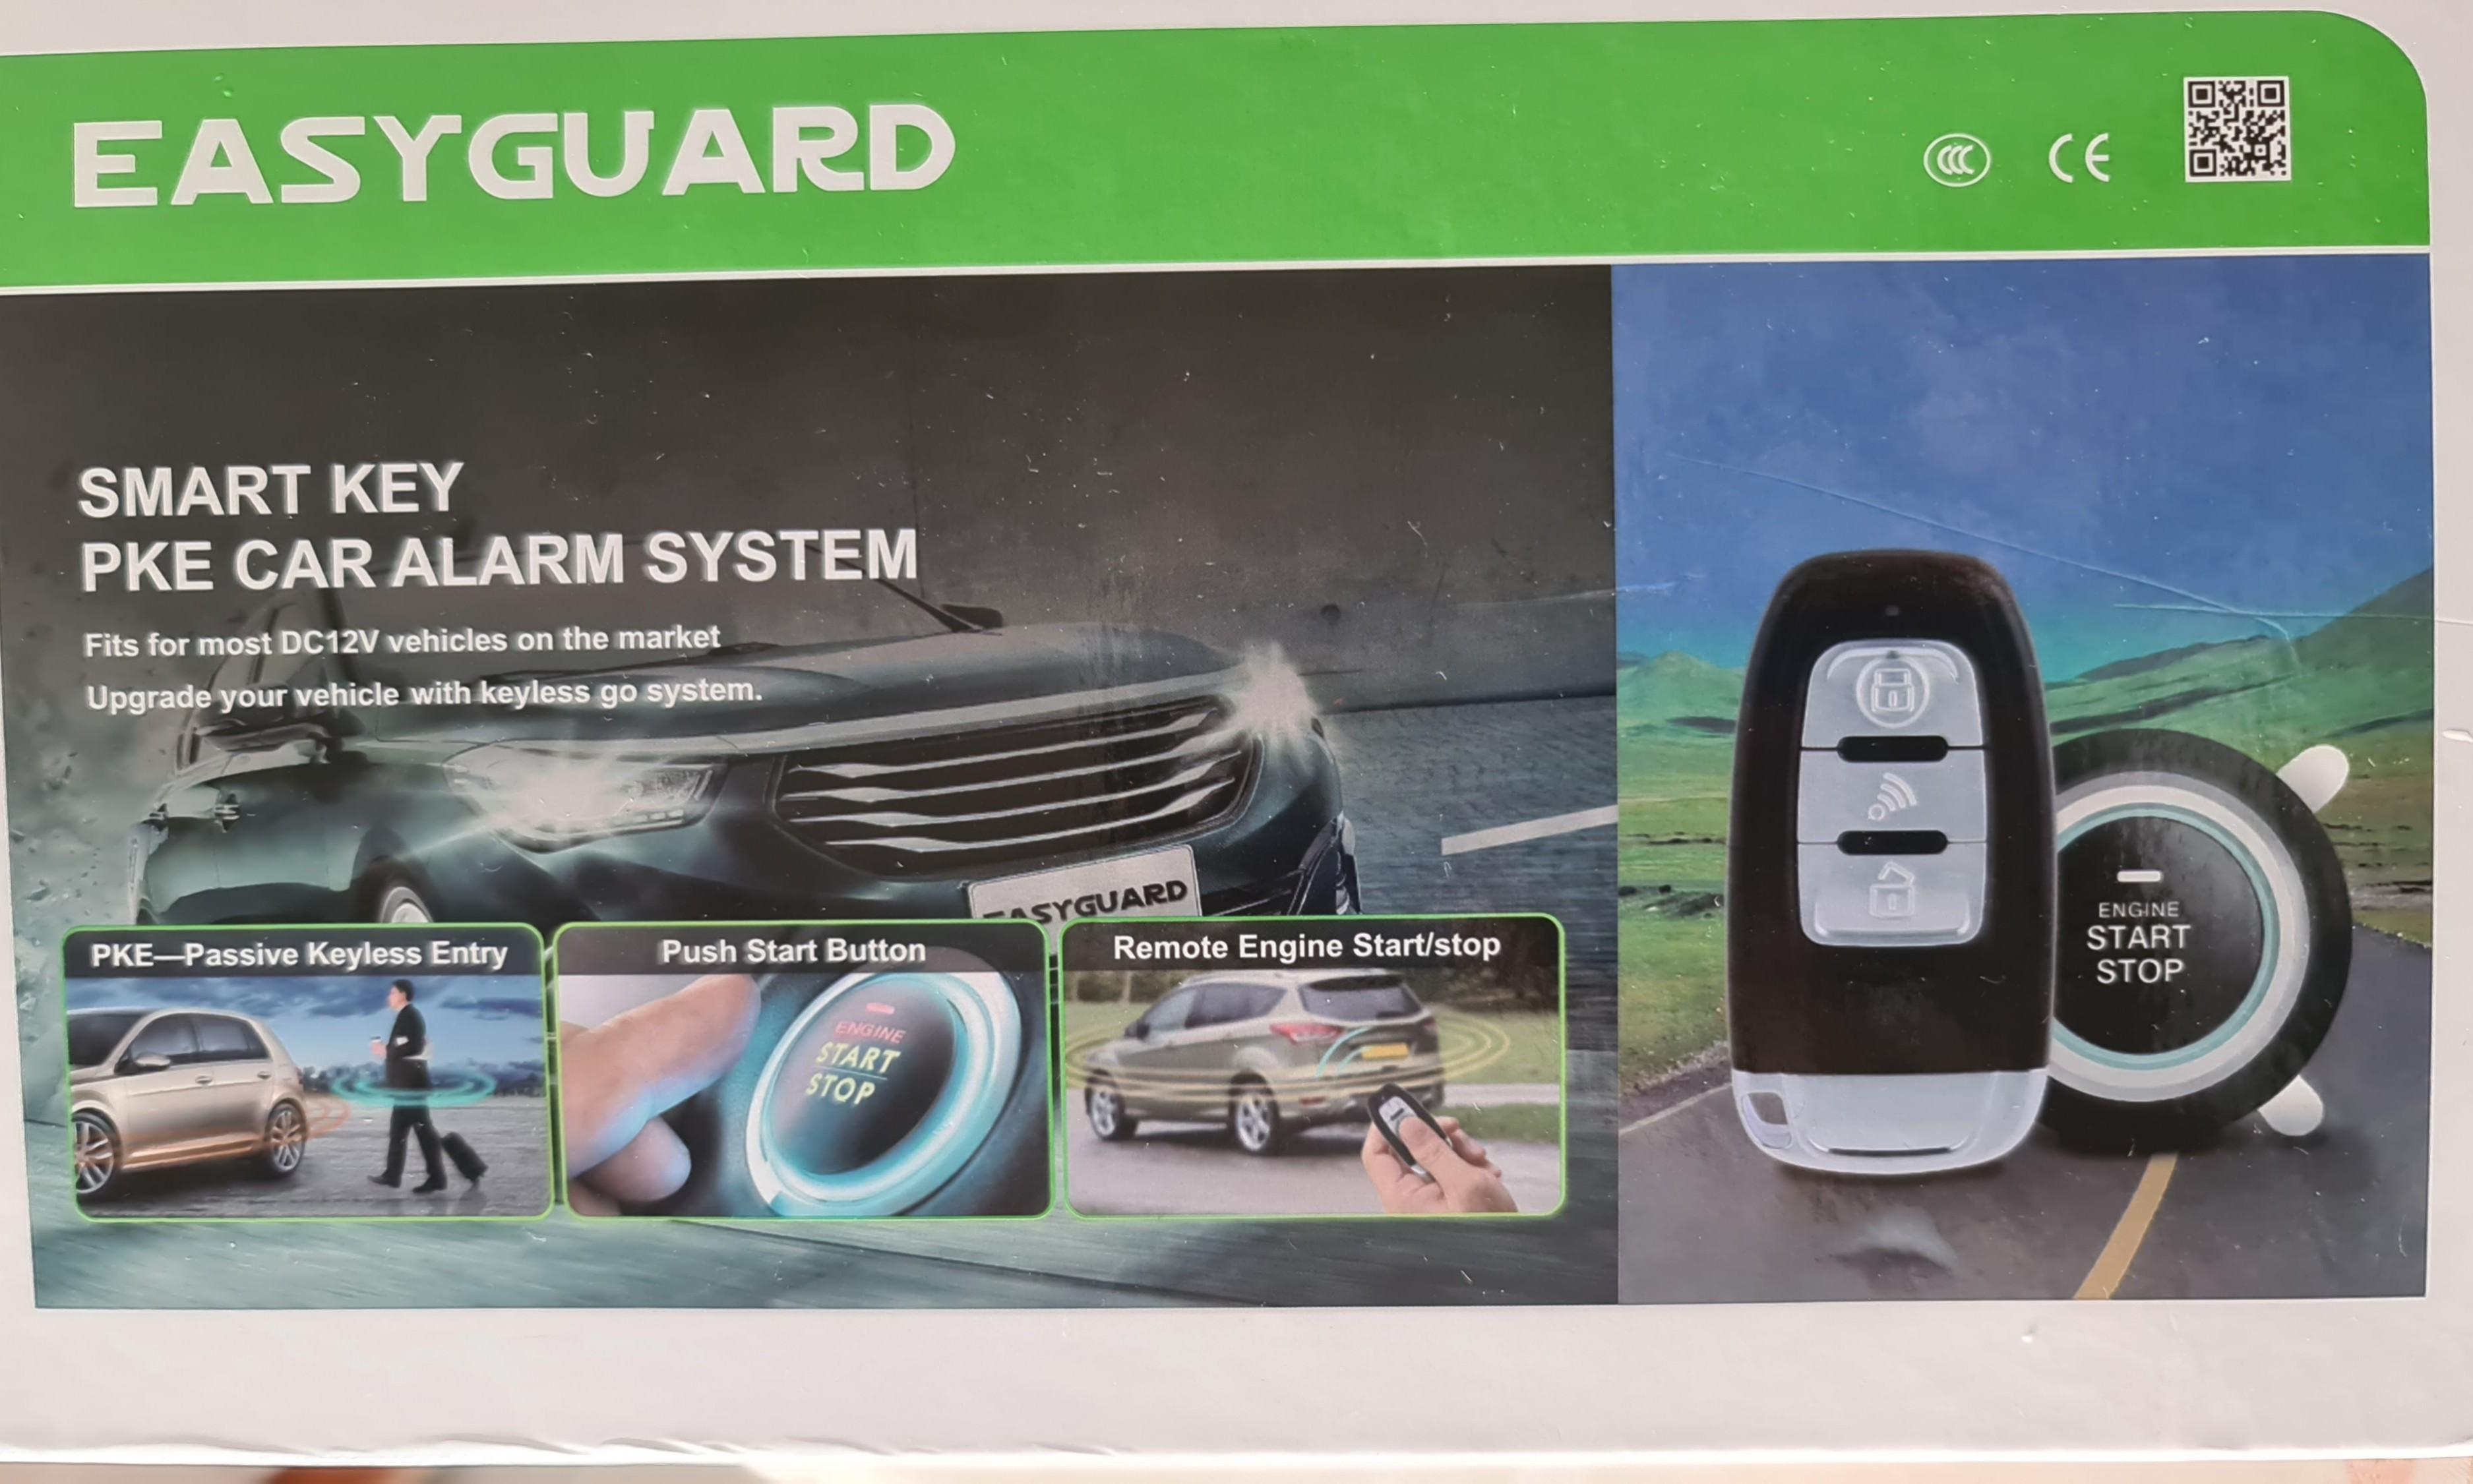 Easyguard Car Alarm System With Pke Passive Keyless Entry Remote Engine Start Security Alarm